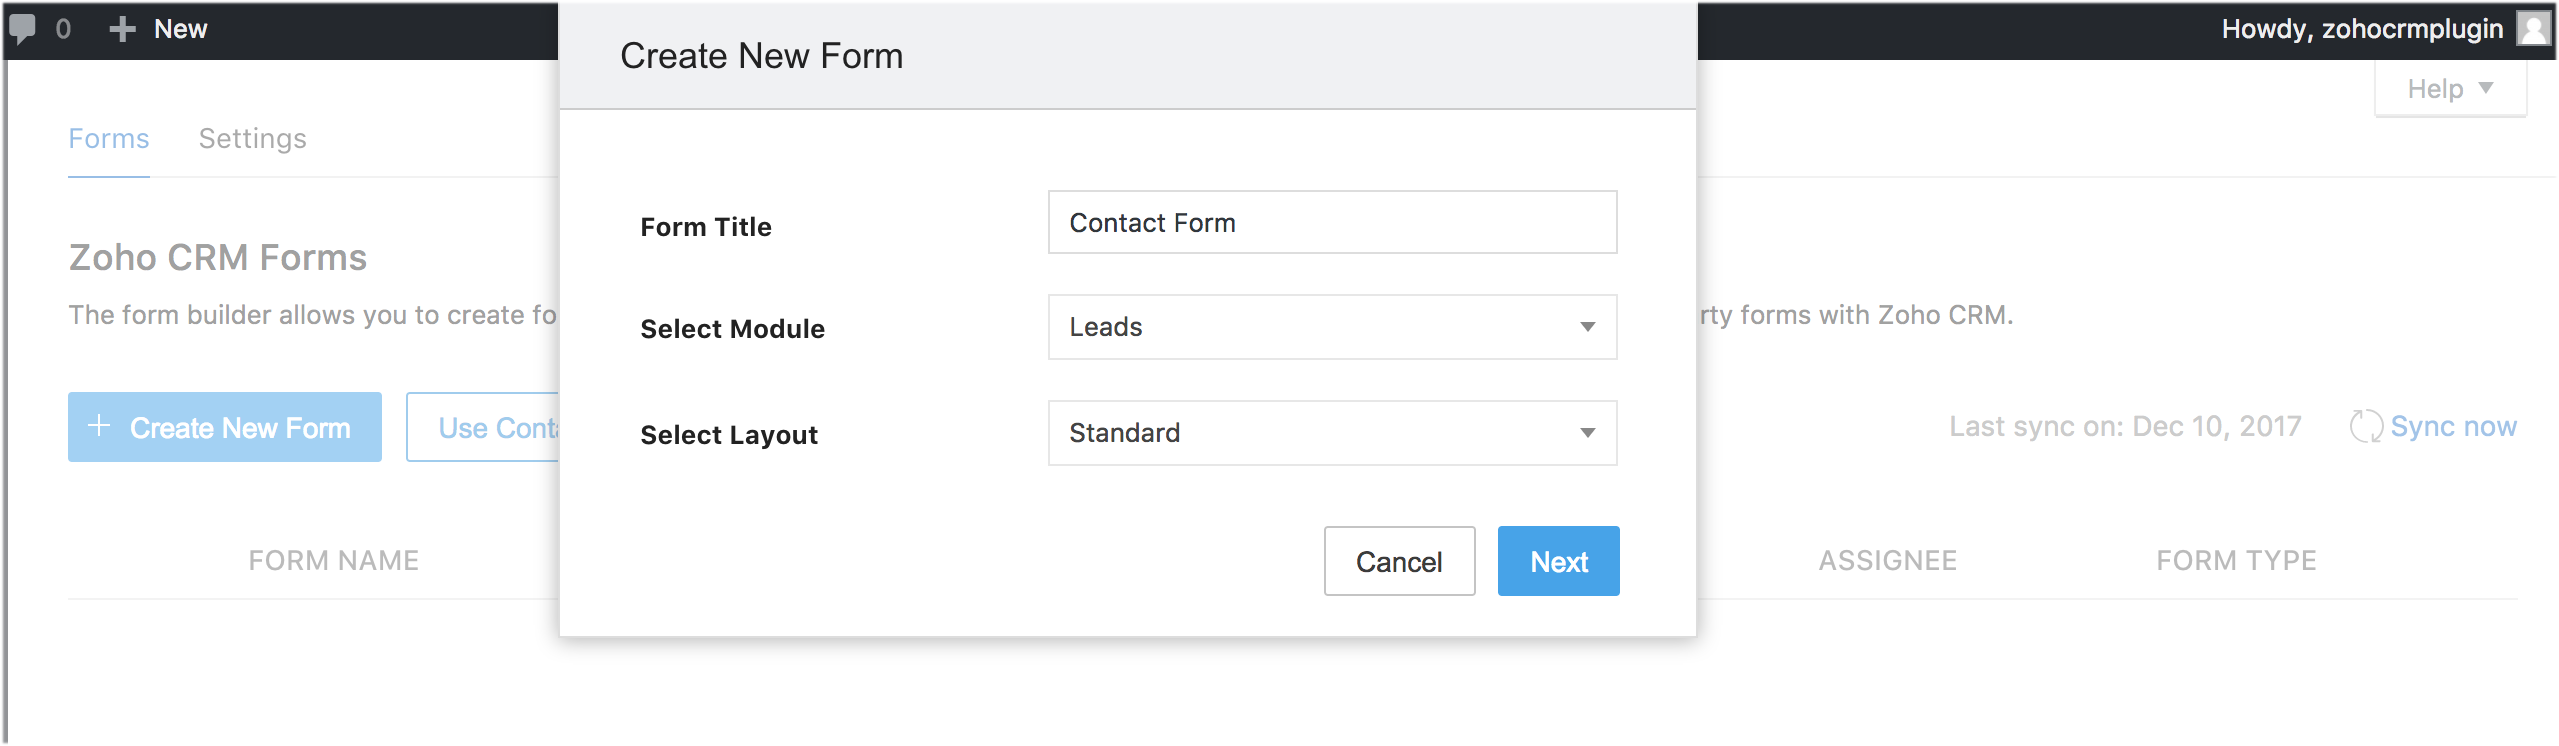 Creating a new form using Zoho CRM